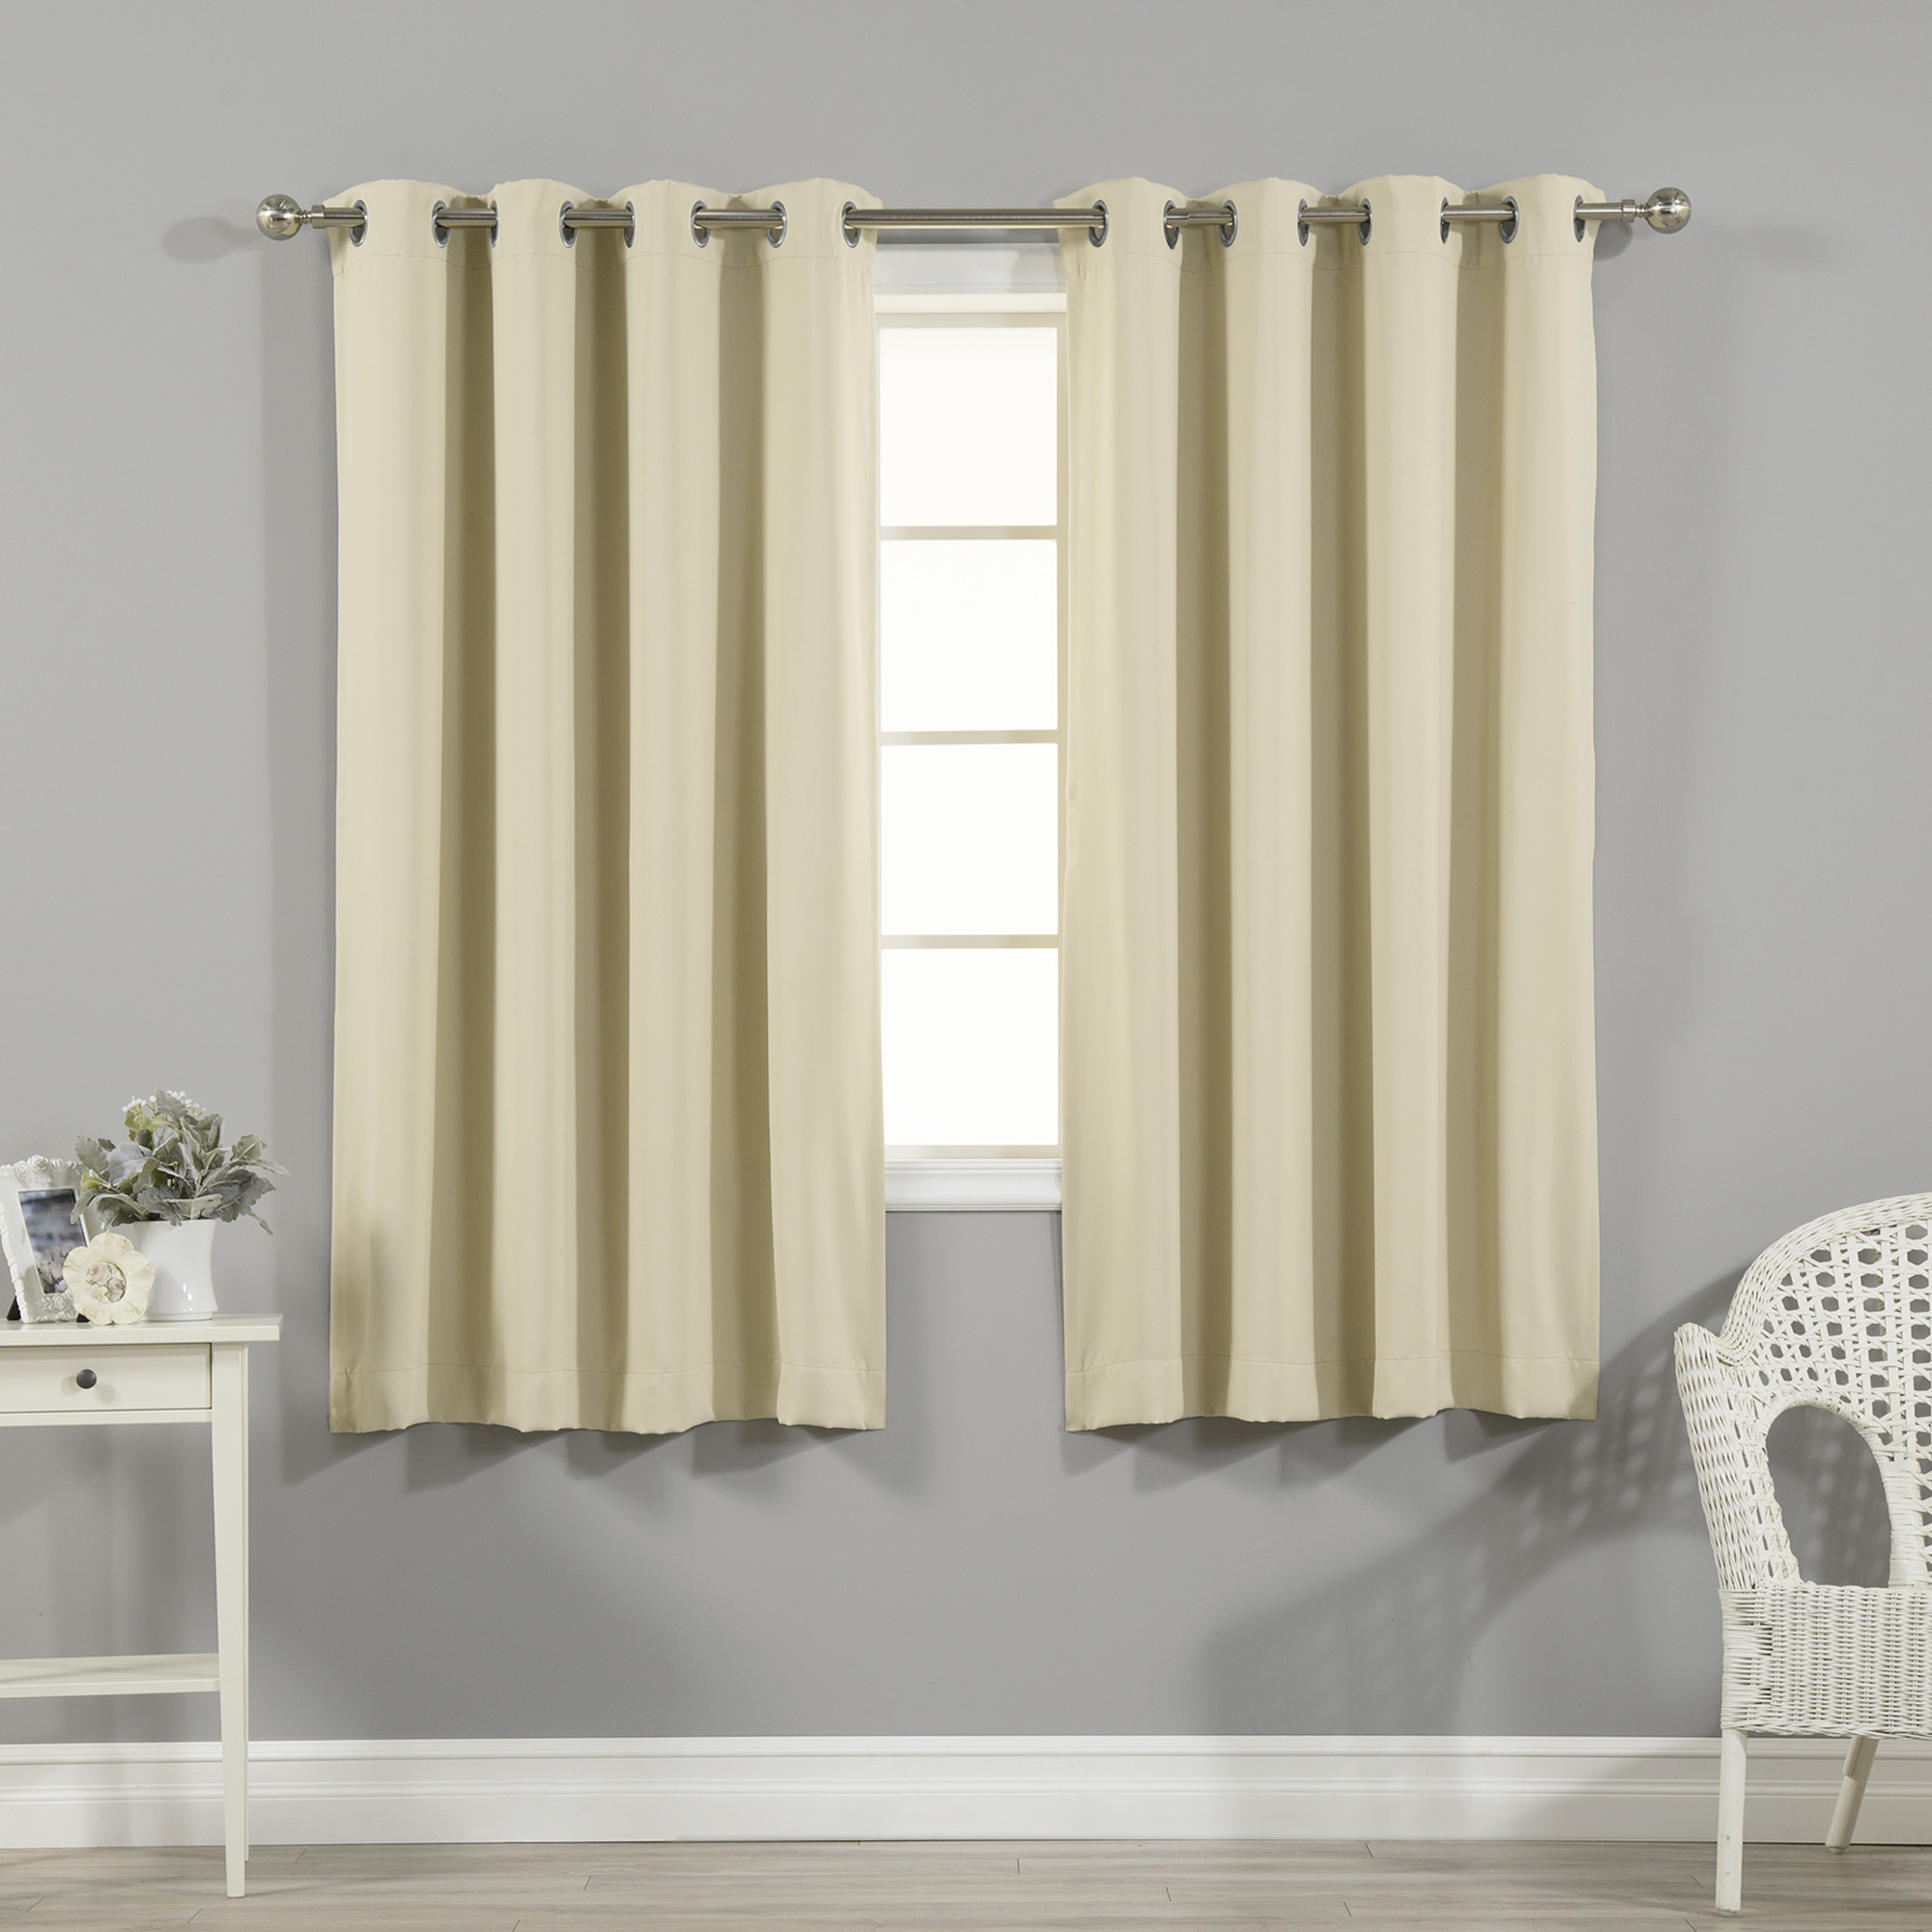 Thermal Insulated Curtains | Discount Thermal Curtains | Thermal Energy Curtains